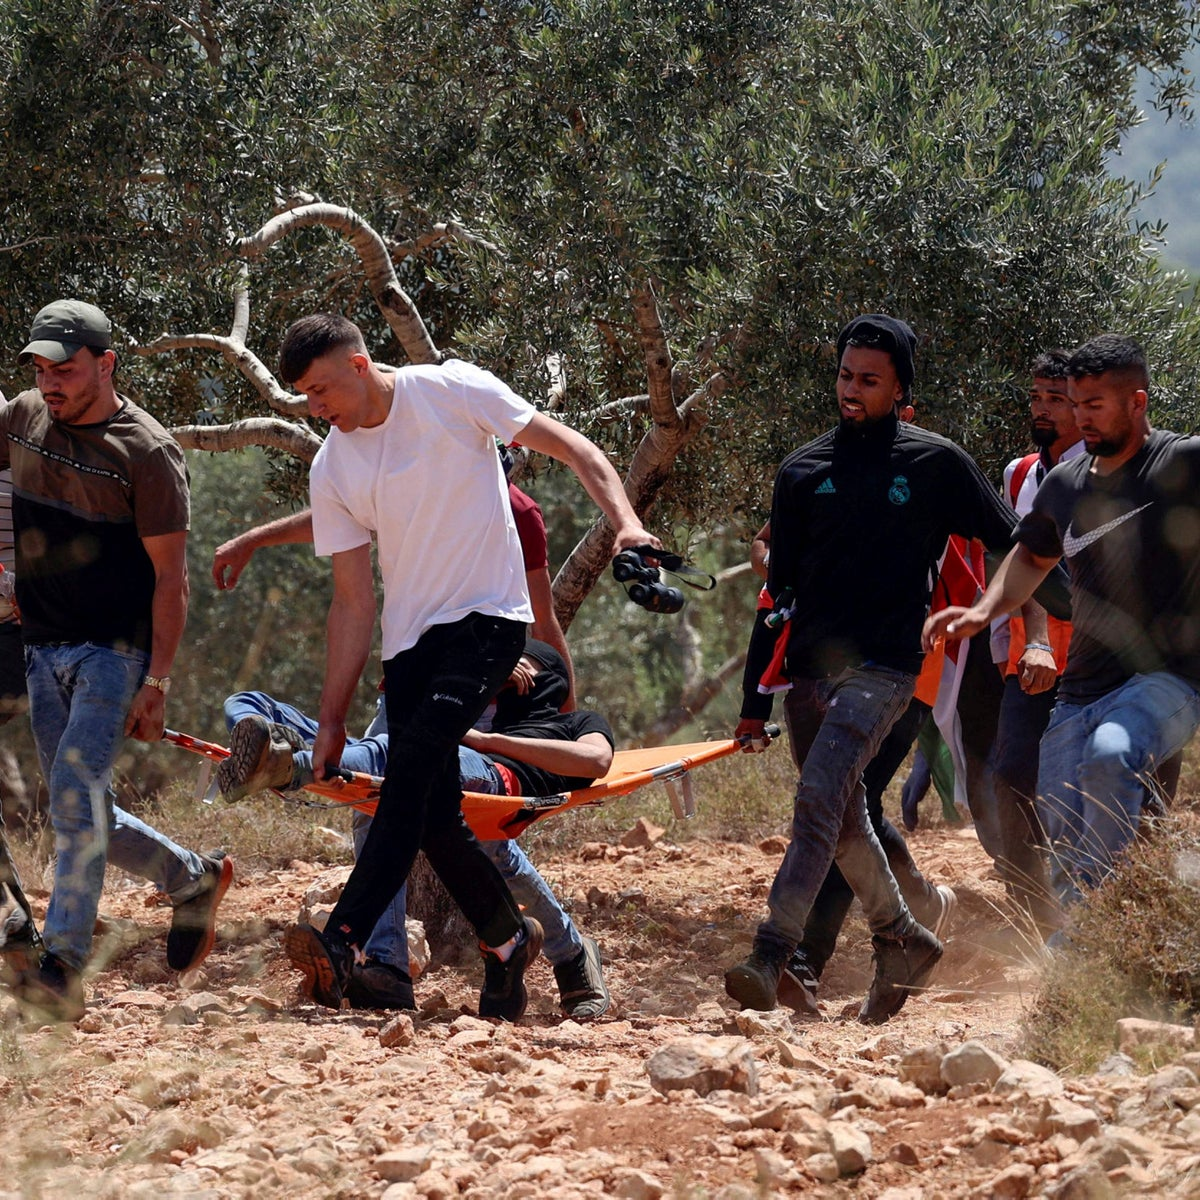 Palestinian protesters carry a wounded protester during a rally against the Evyatar outpost, two weeks ago.